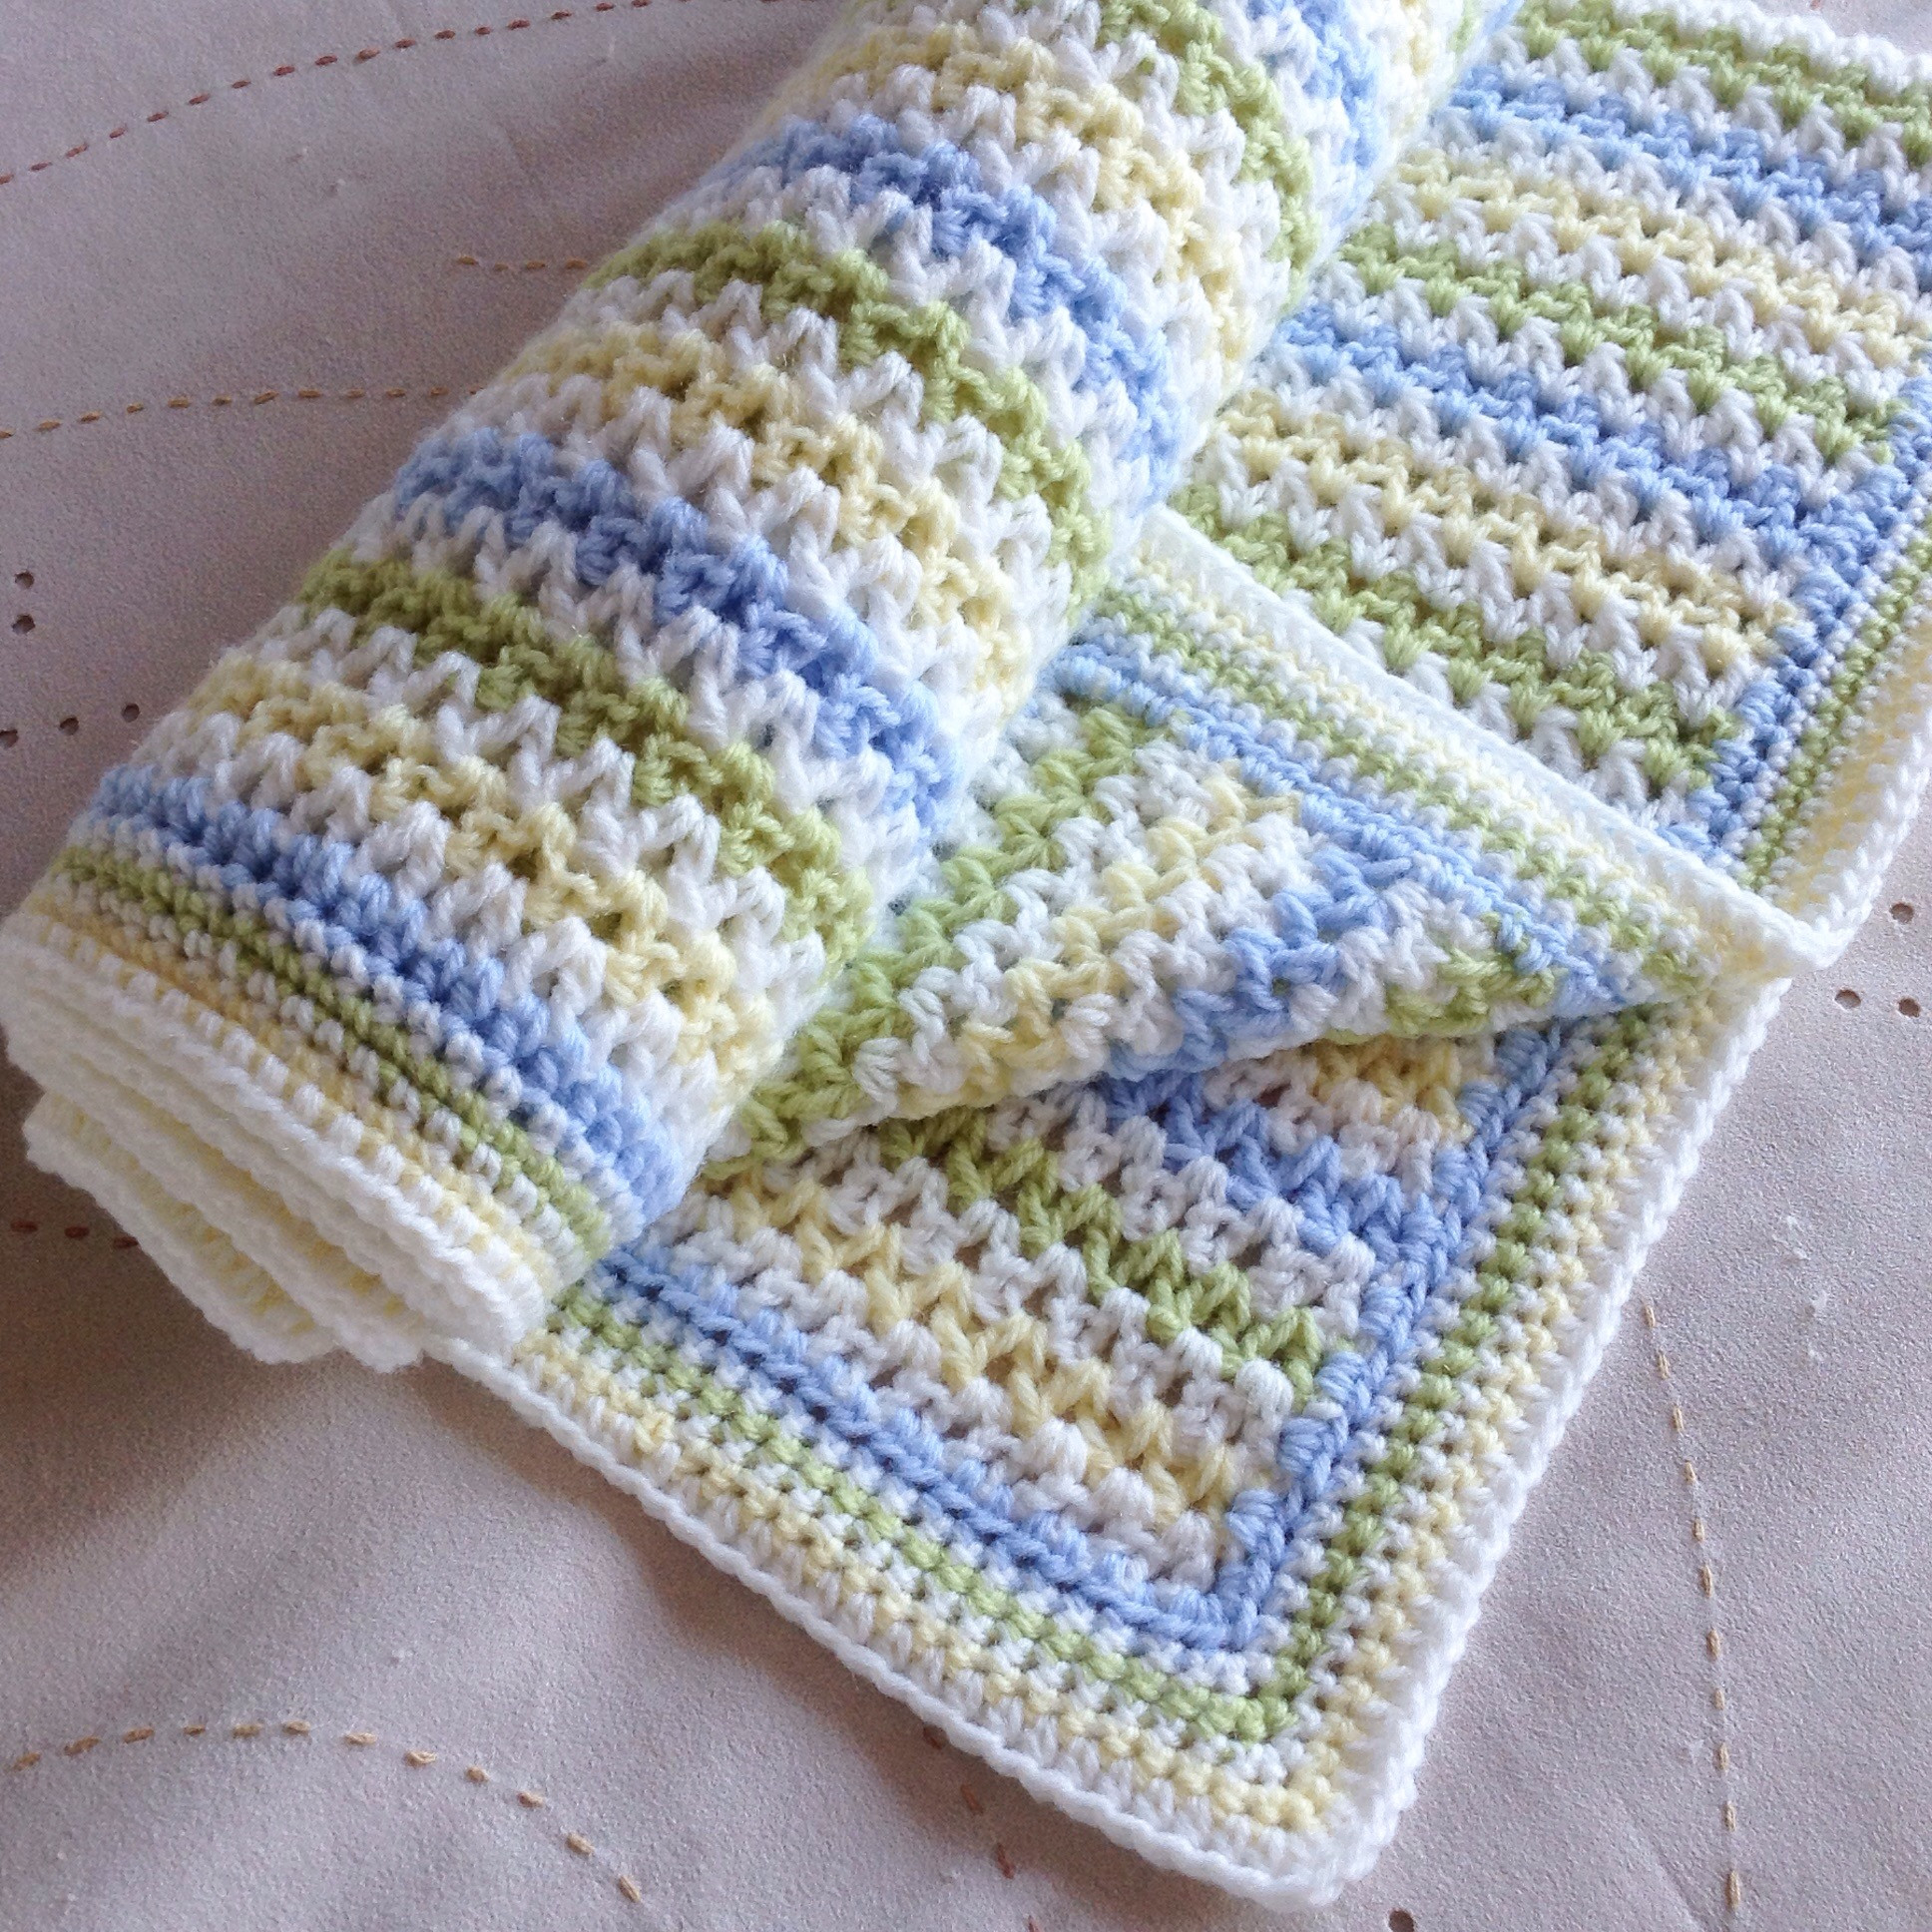 Easy Crochet Afghan Unique Crochet Blankets – Patternpiper Of Charming 48 Images Easy Crochet Afghan